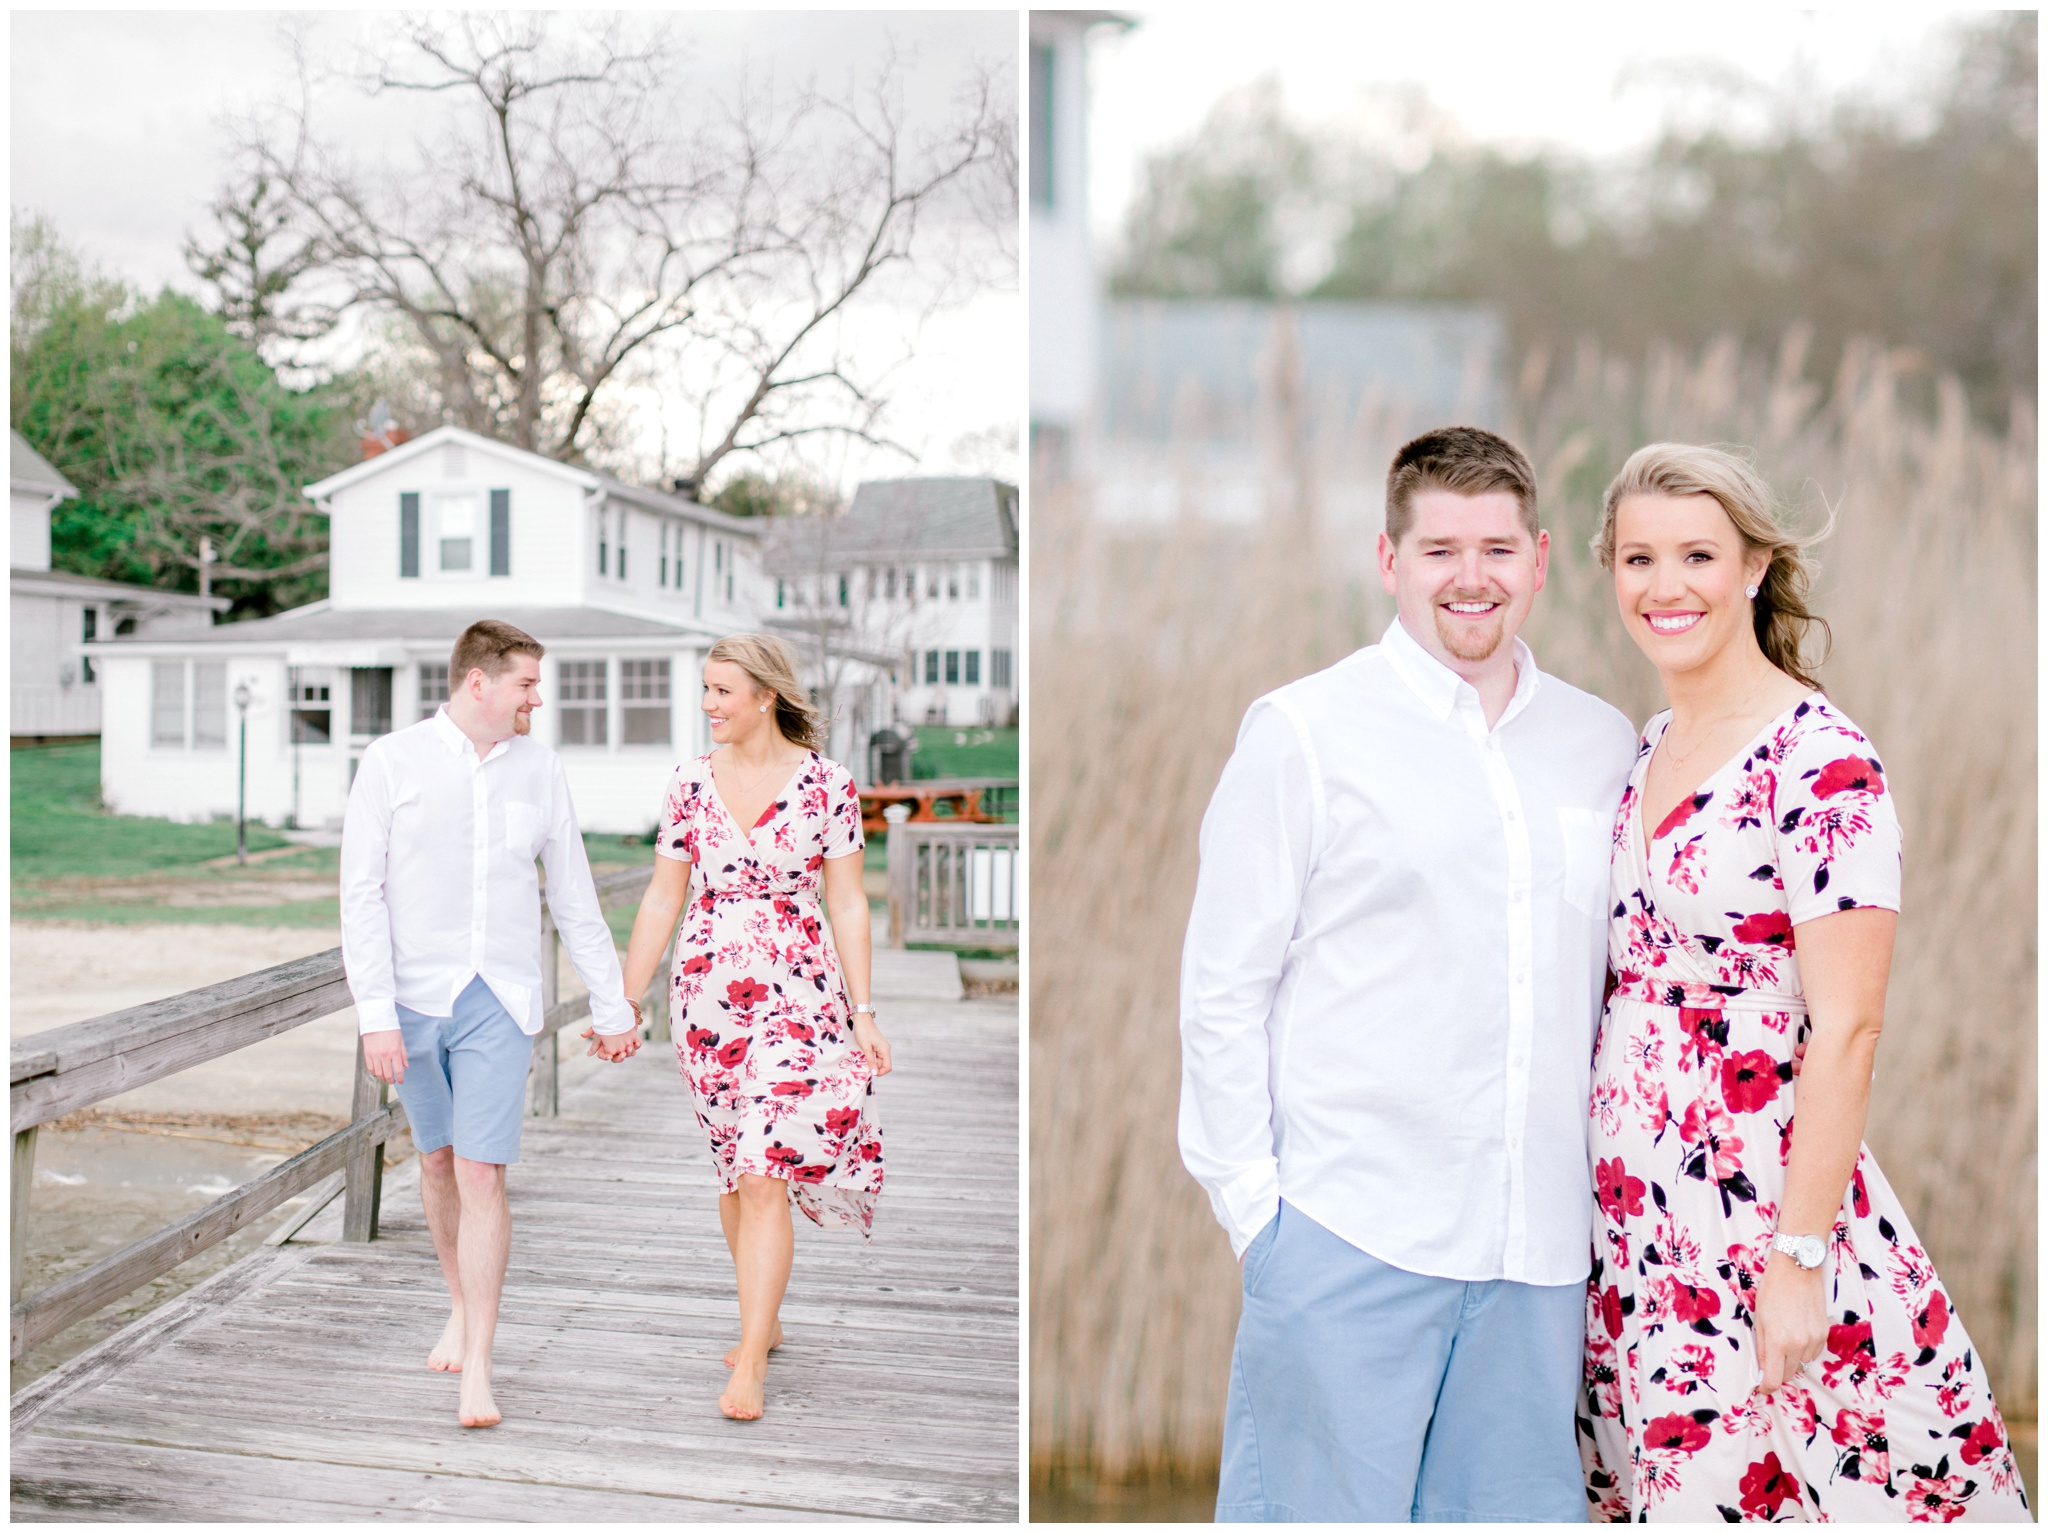 Annapolis engagement photographer, annapolis engagement session, annapolis wedding photographer, annapolis wedding, dc wedding photographer, maryland wedding photographer